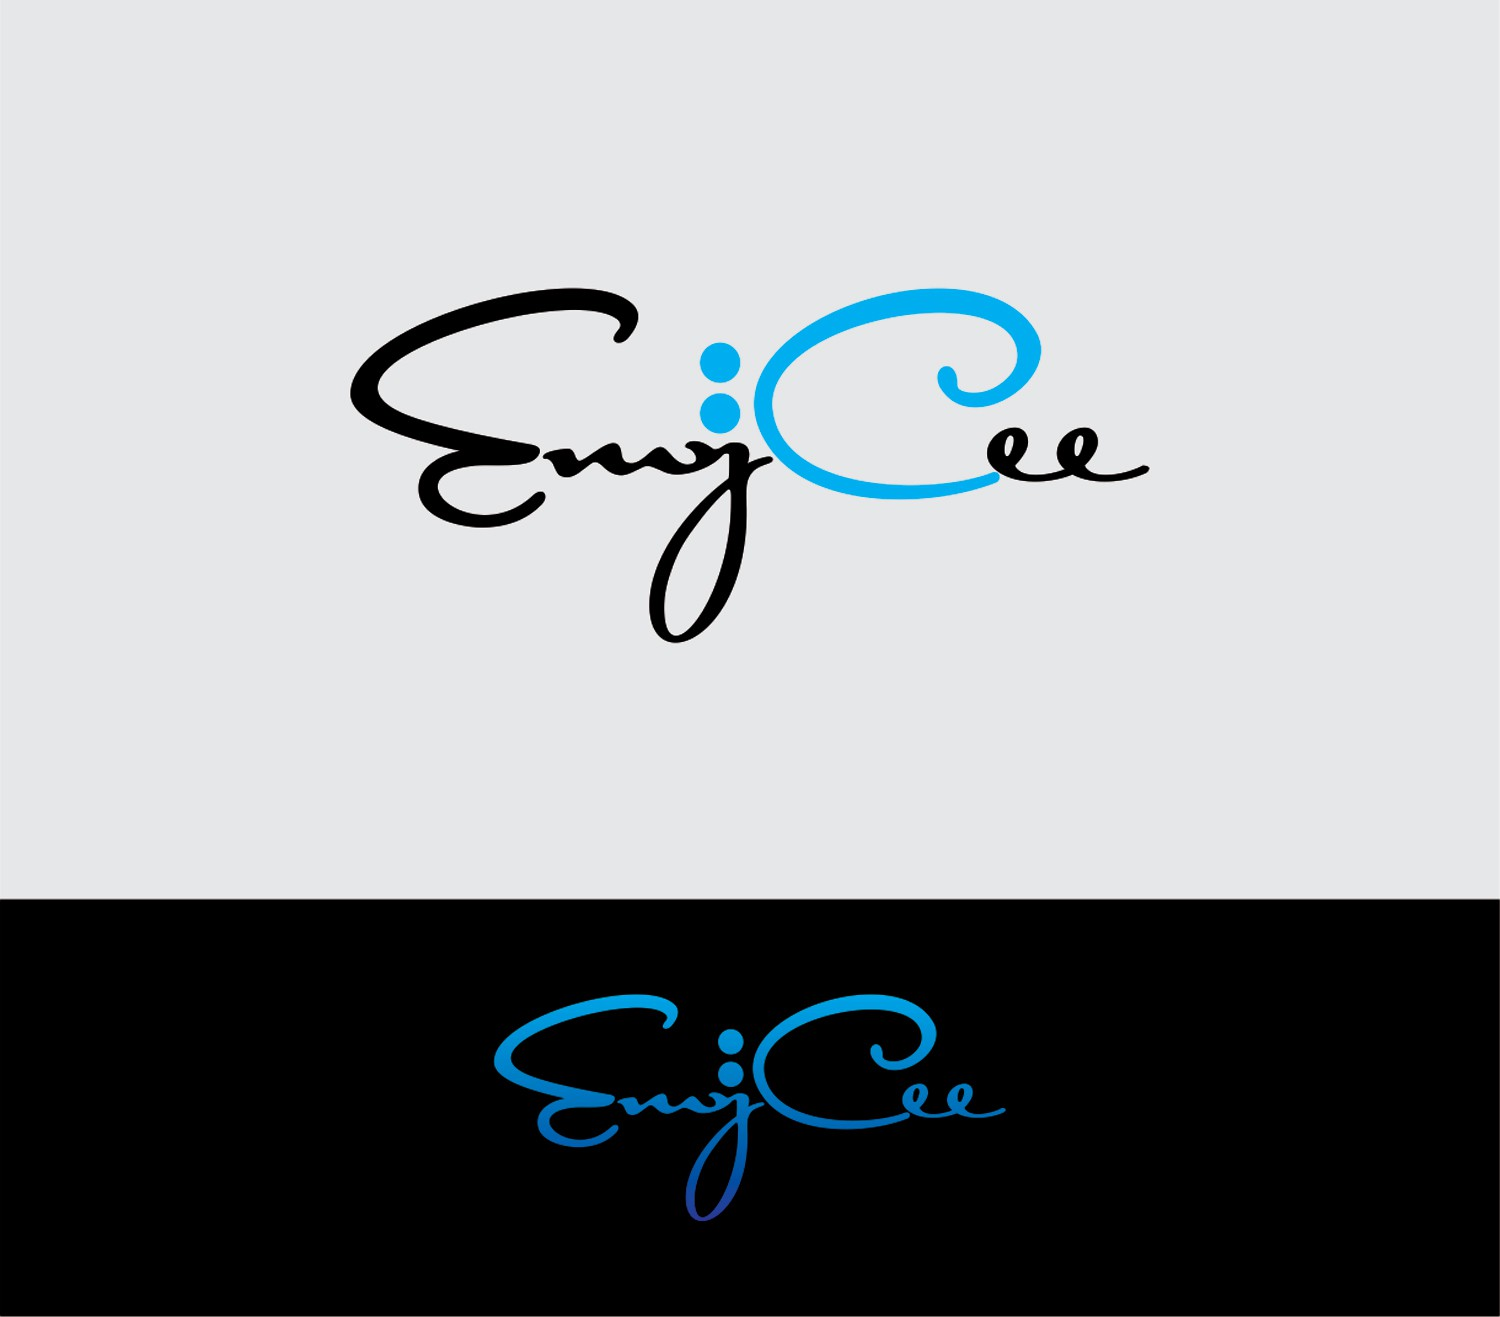 Emy Cee needs a new logo